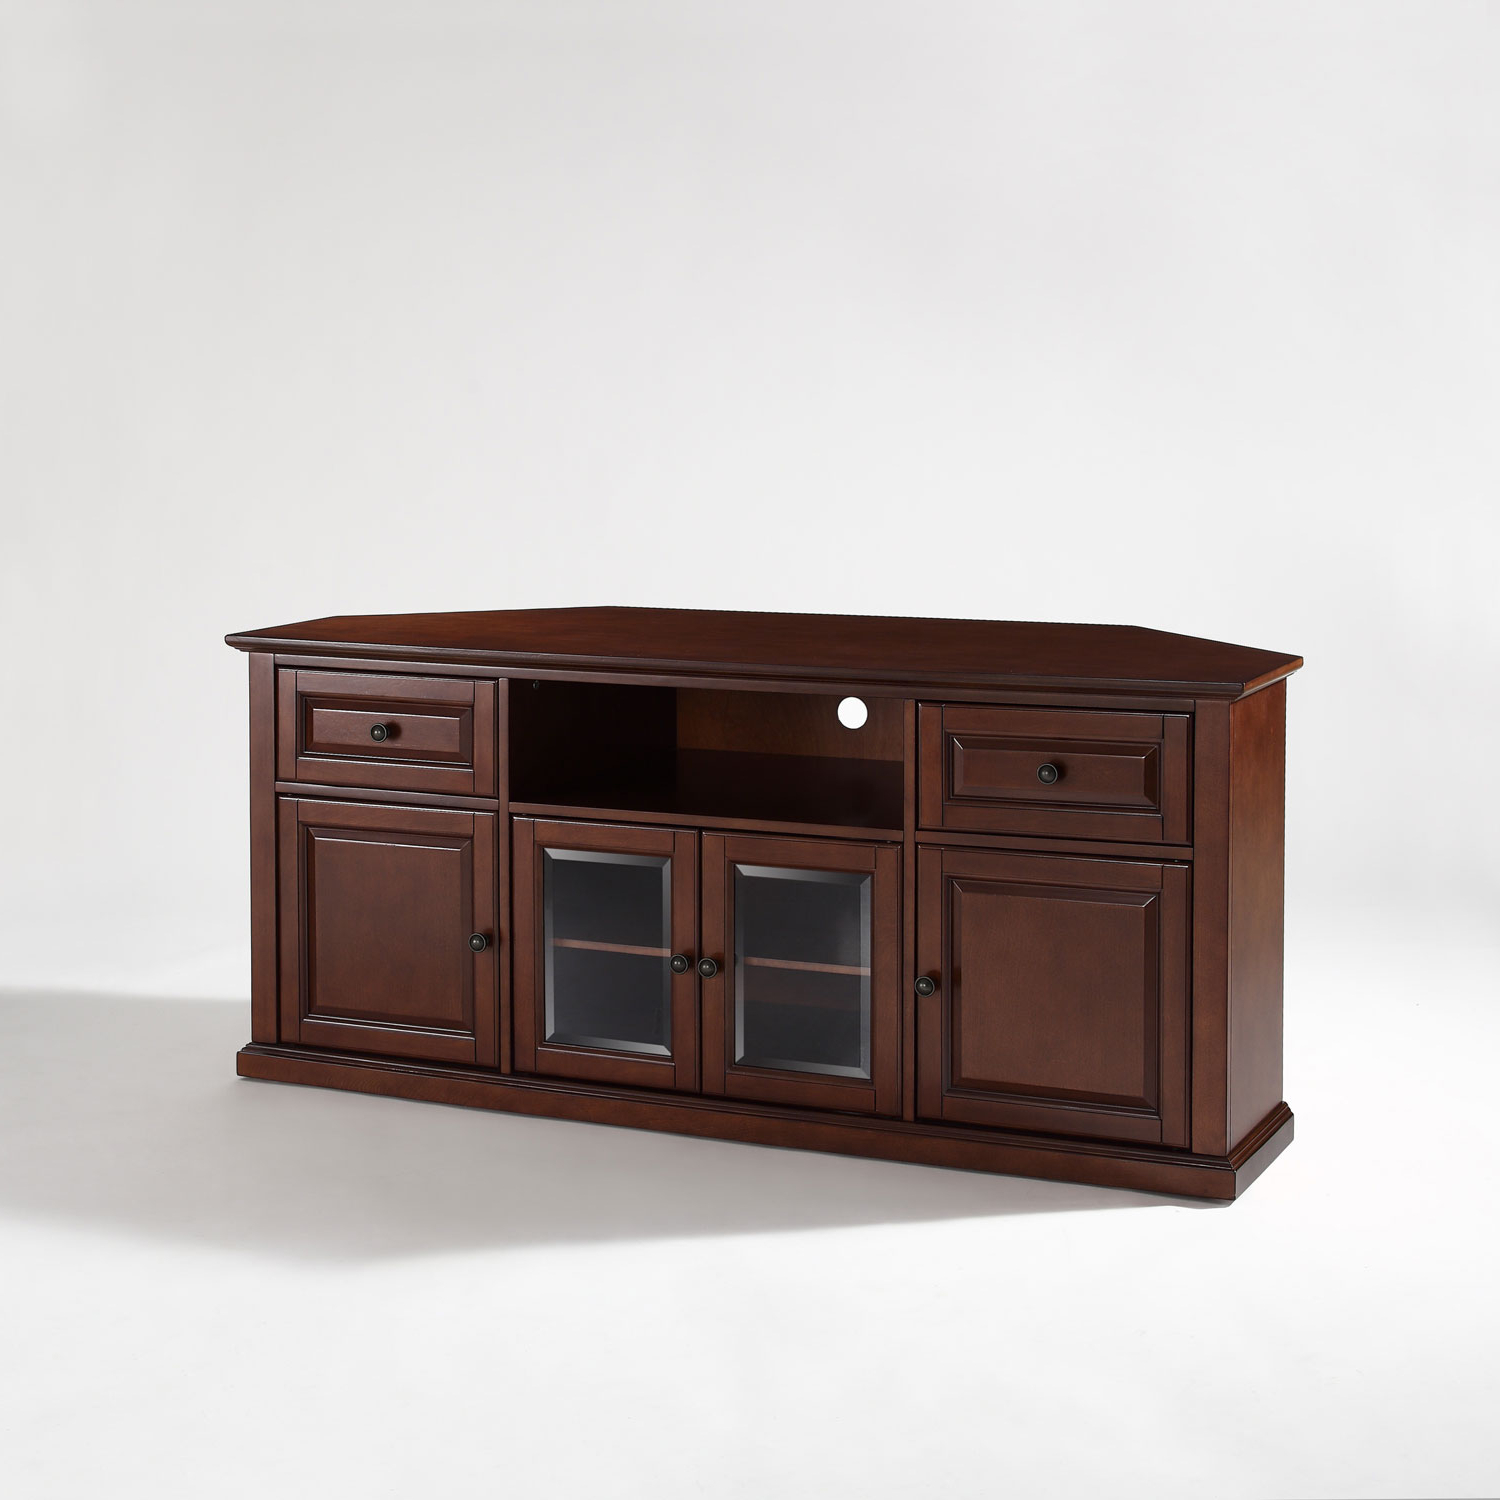 Tv Stands For Corners In 2018 Crosley Furniture 60 Inch Corner Tv Stand In Vintage Mahogany (View 13 of 20)